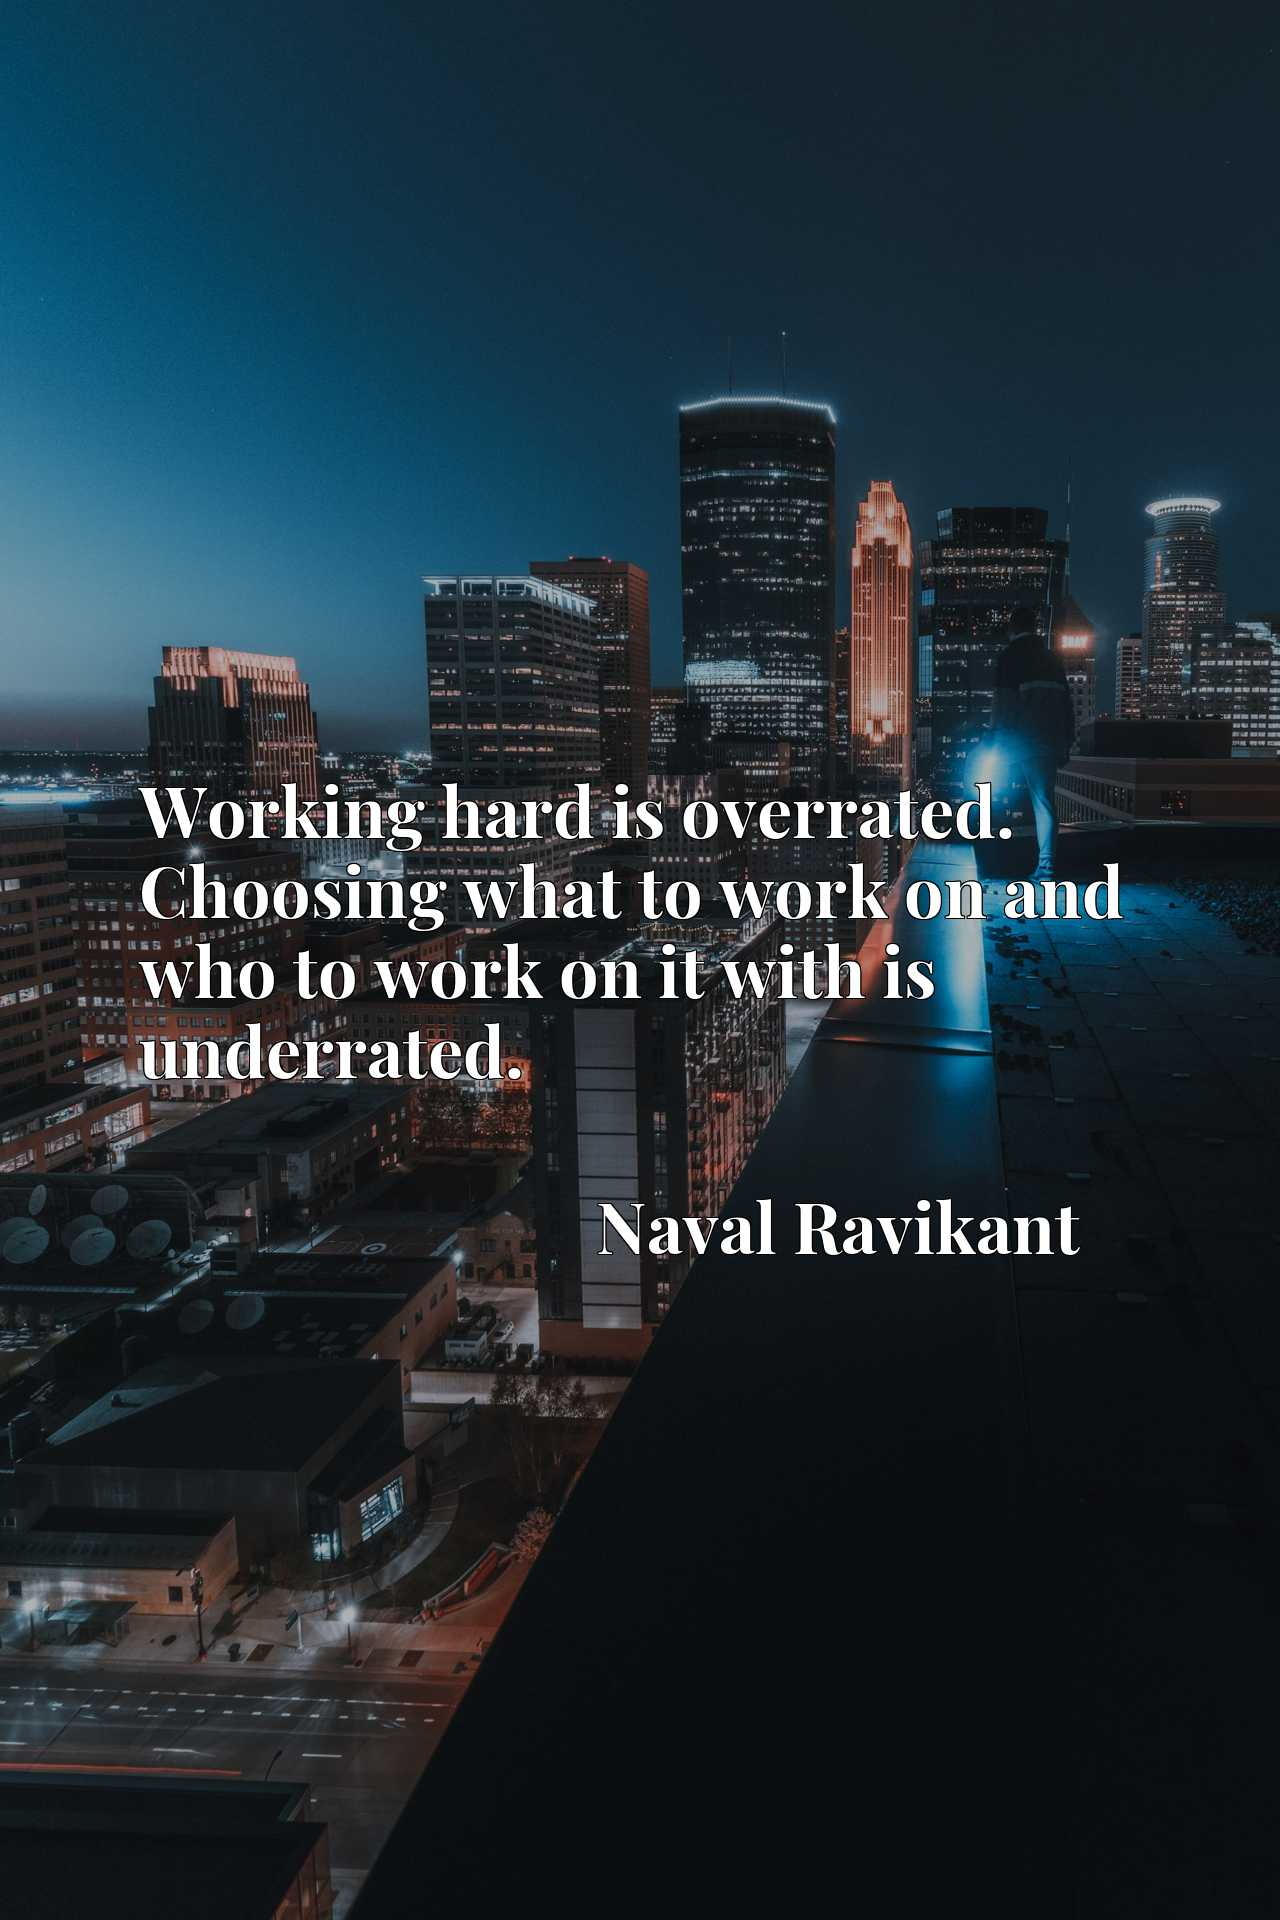 Working hard is overrated. Choosing what to work on and who to work on it with is underrated.